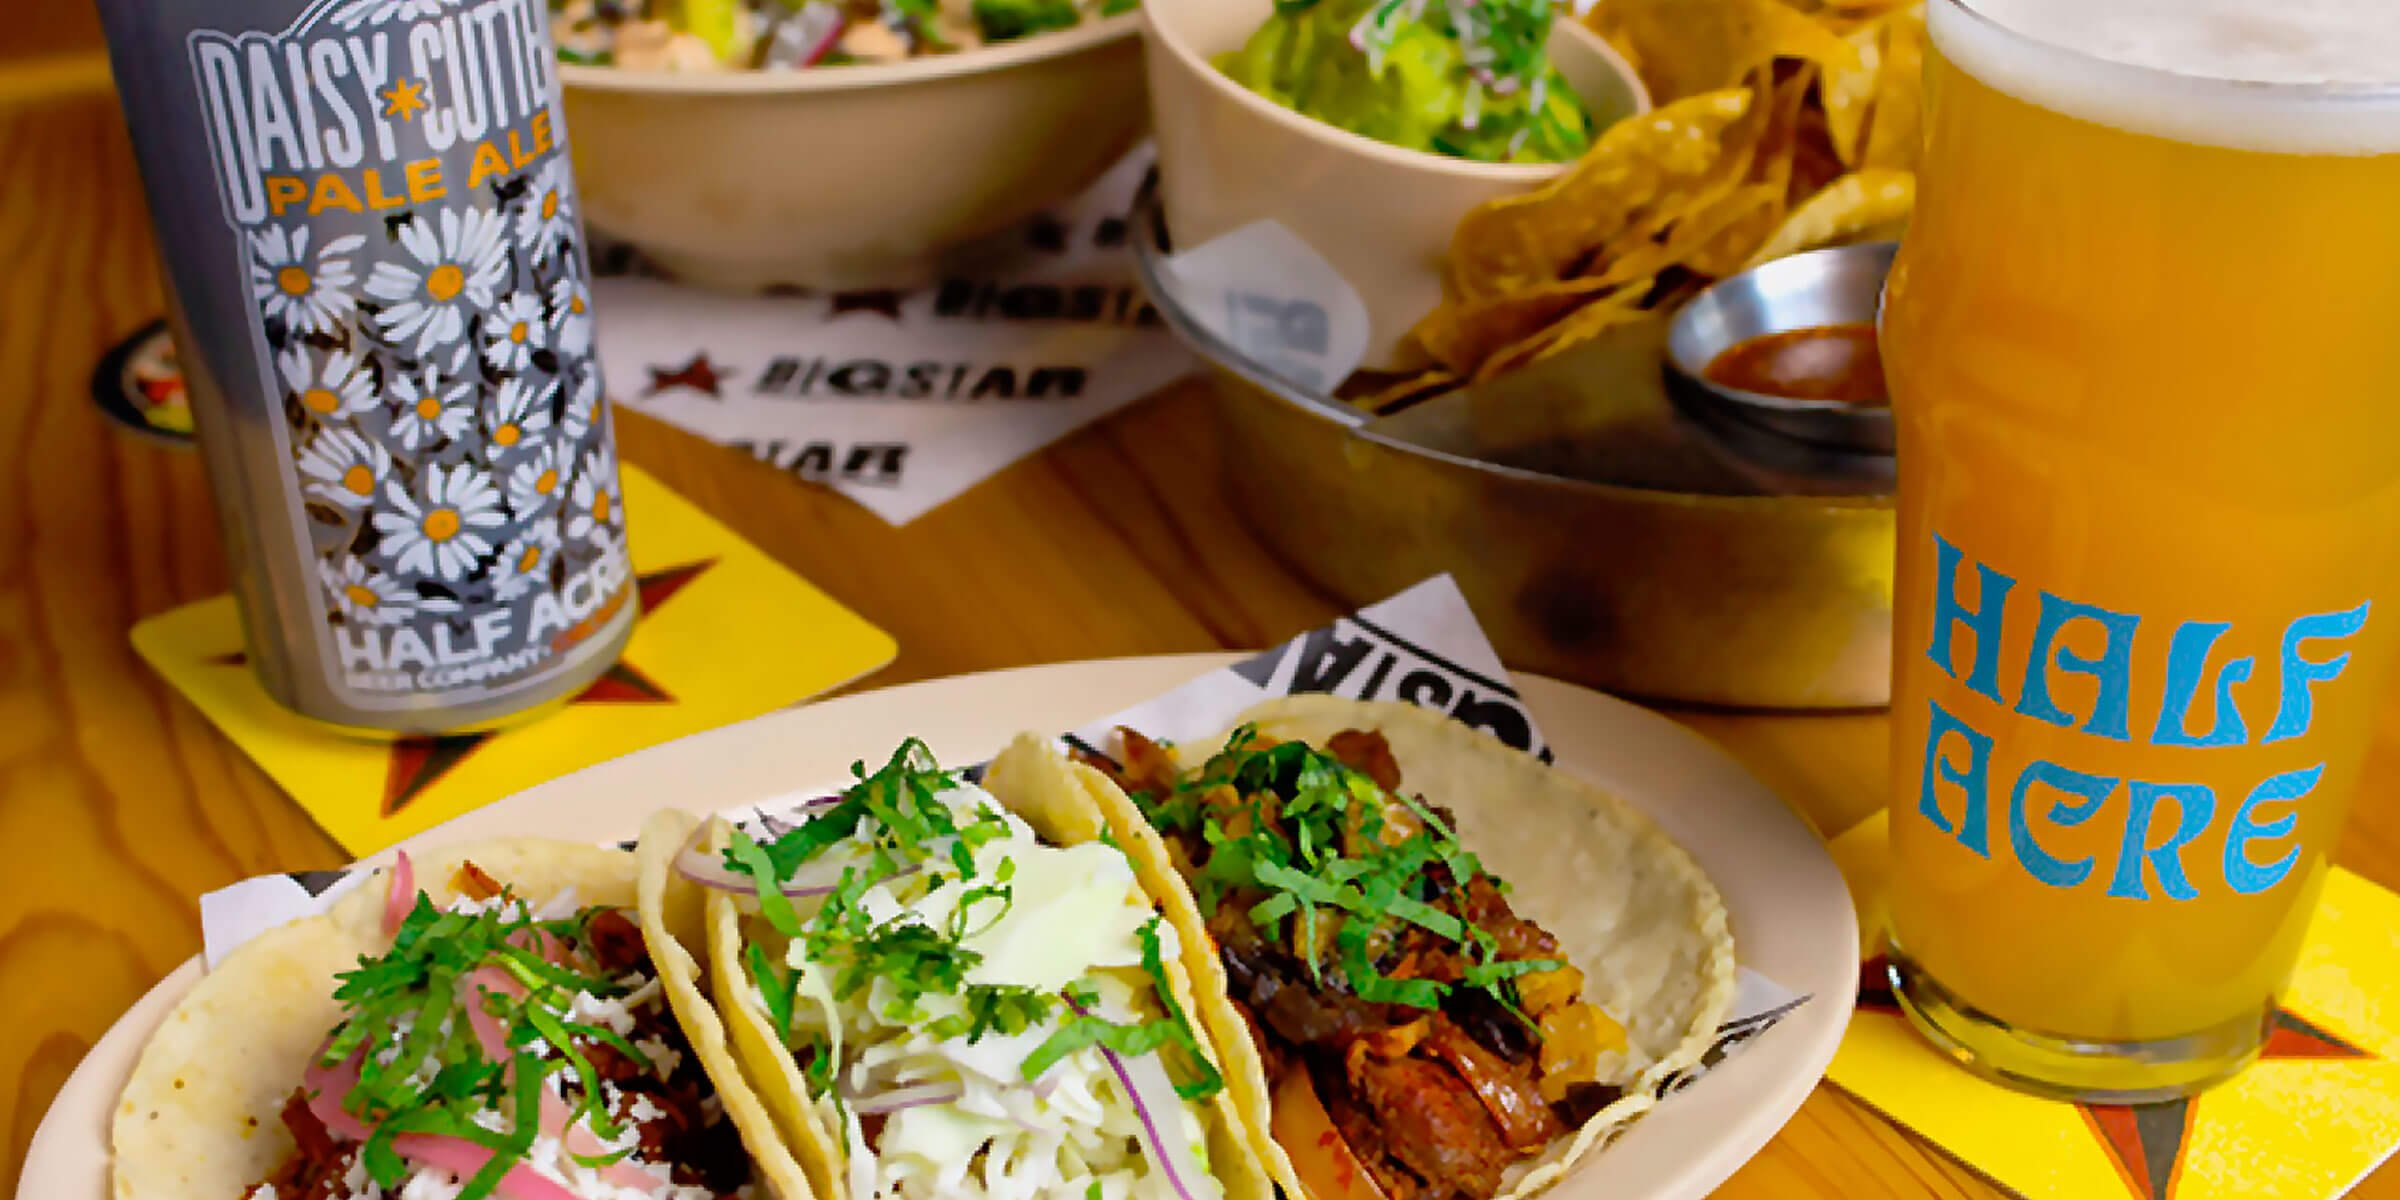 Chicago-based Half Acre Beer Company is bringing James Beard-winning Chef-Partner Paul Kahan's highly sought-after Big Star tacos to their Balmoral taproom.